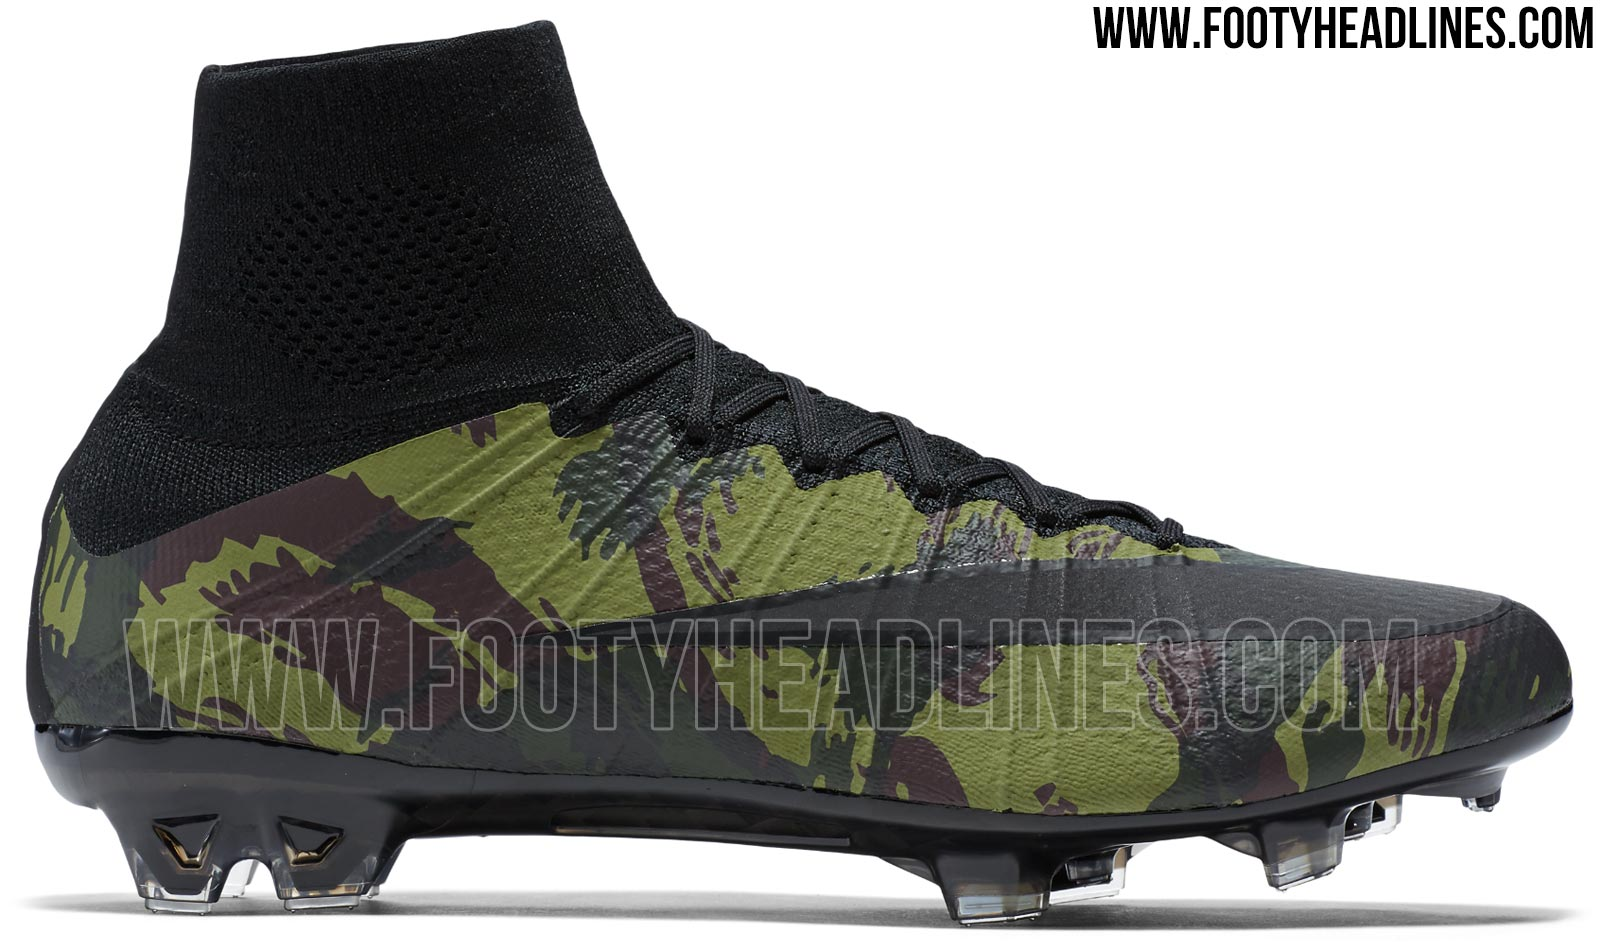 c15afc9e361 Combining the popular silhouette of the cutting-edge Nike Mercurial  Superfly soccer cleats with a totally new camouflage print on the upper